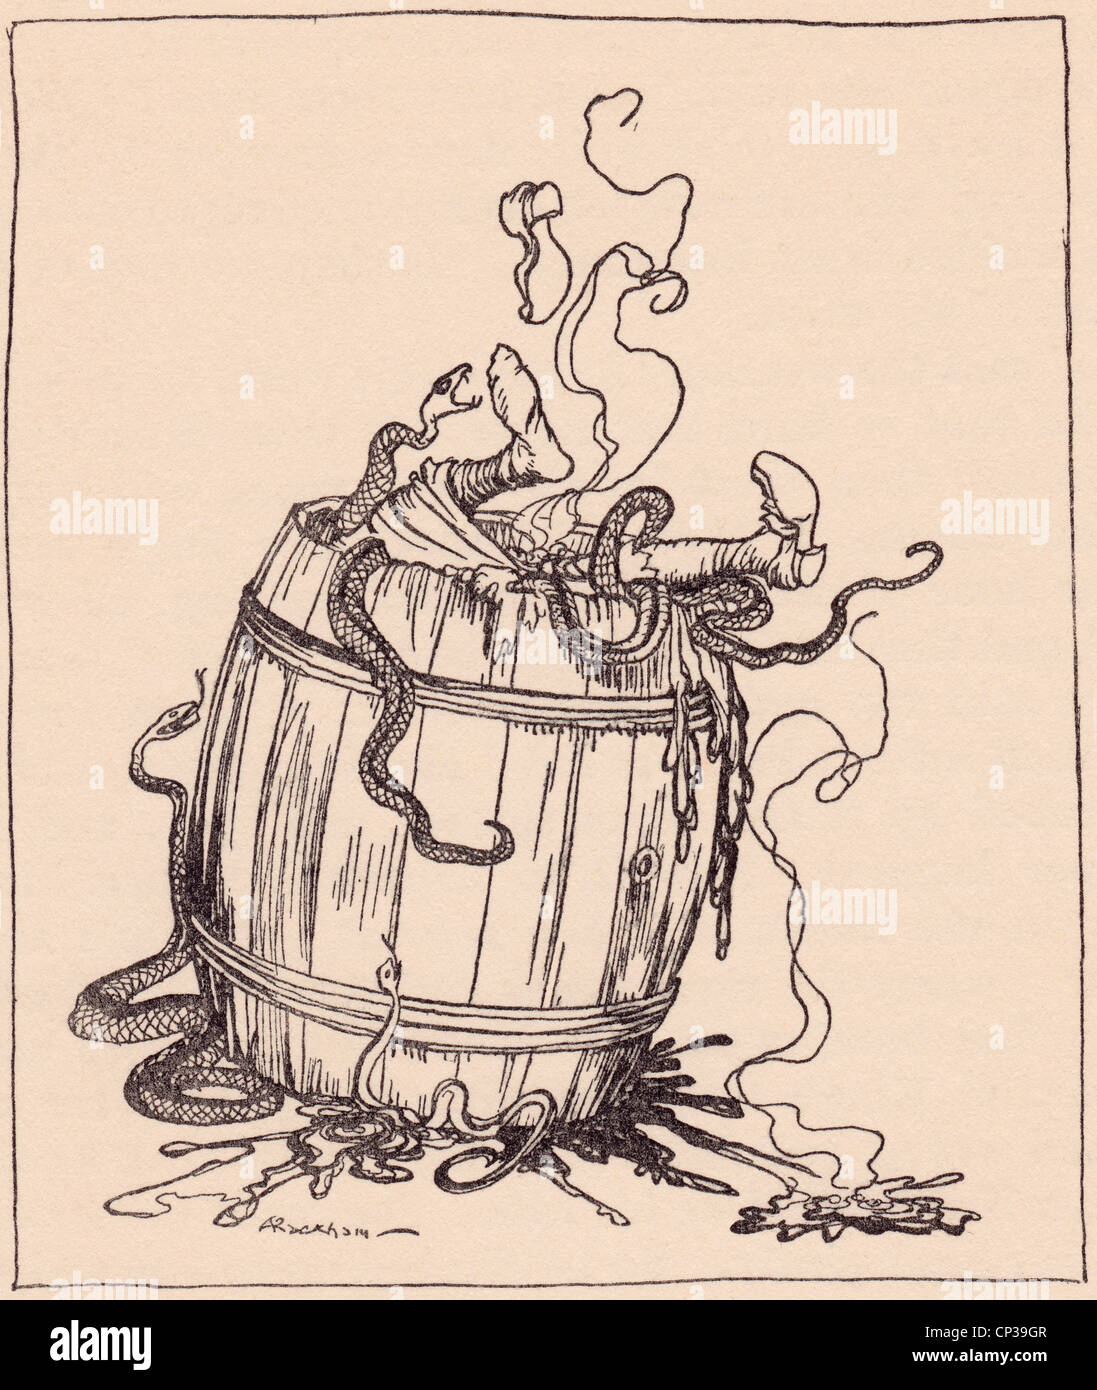 The wicked mother-in-law was put into a barrel full of boiling oil and venomous snakes. Grimm's Fairy Tale. - Stock Image